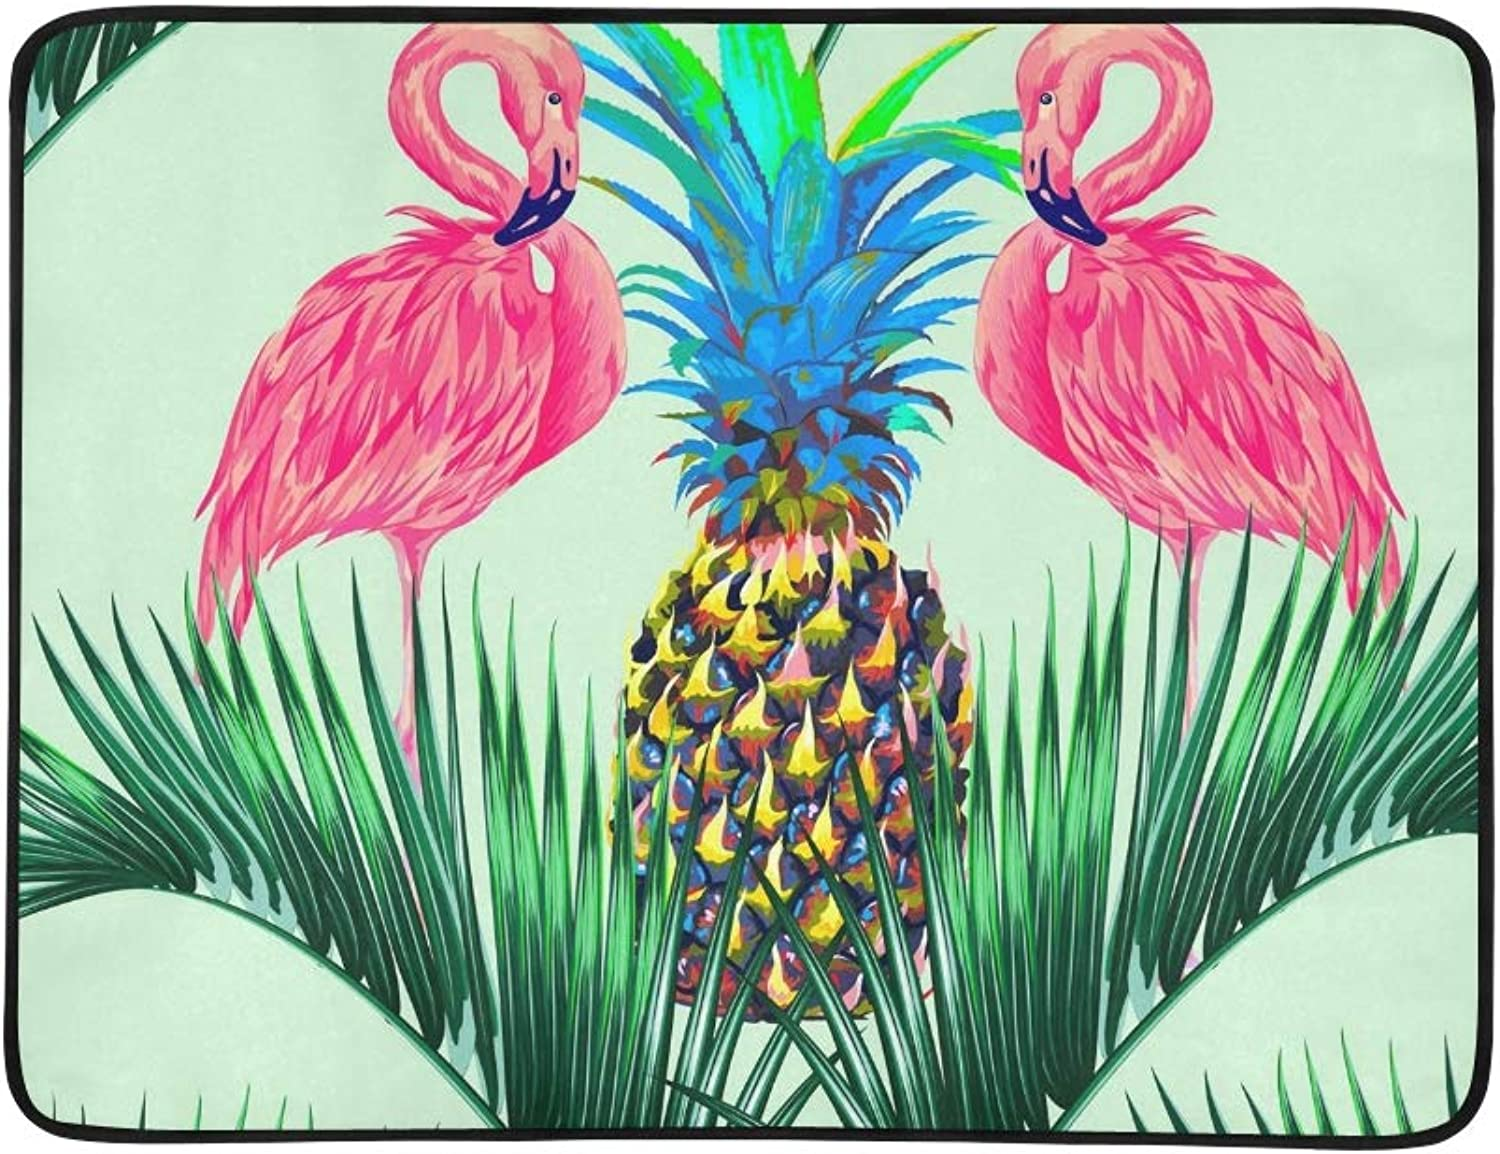 Pink Flamingos Exotic Birds Palm Leaves Portable and Foldable Blanket Mat 60x78 Inch Handy Mat for Camping Picnic Beach Indoor Outdoor Travel